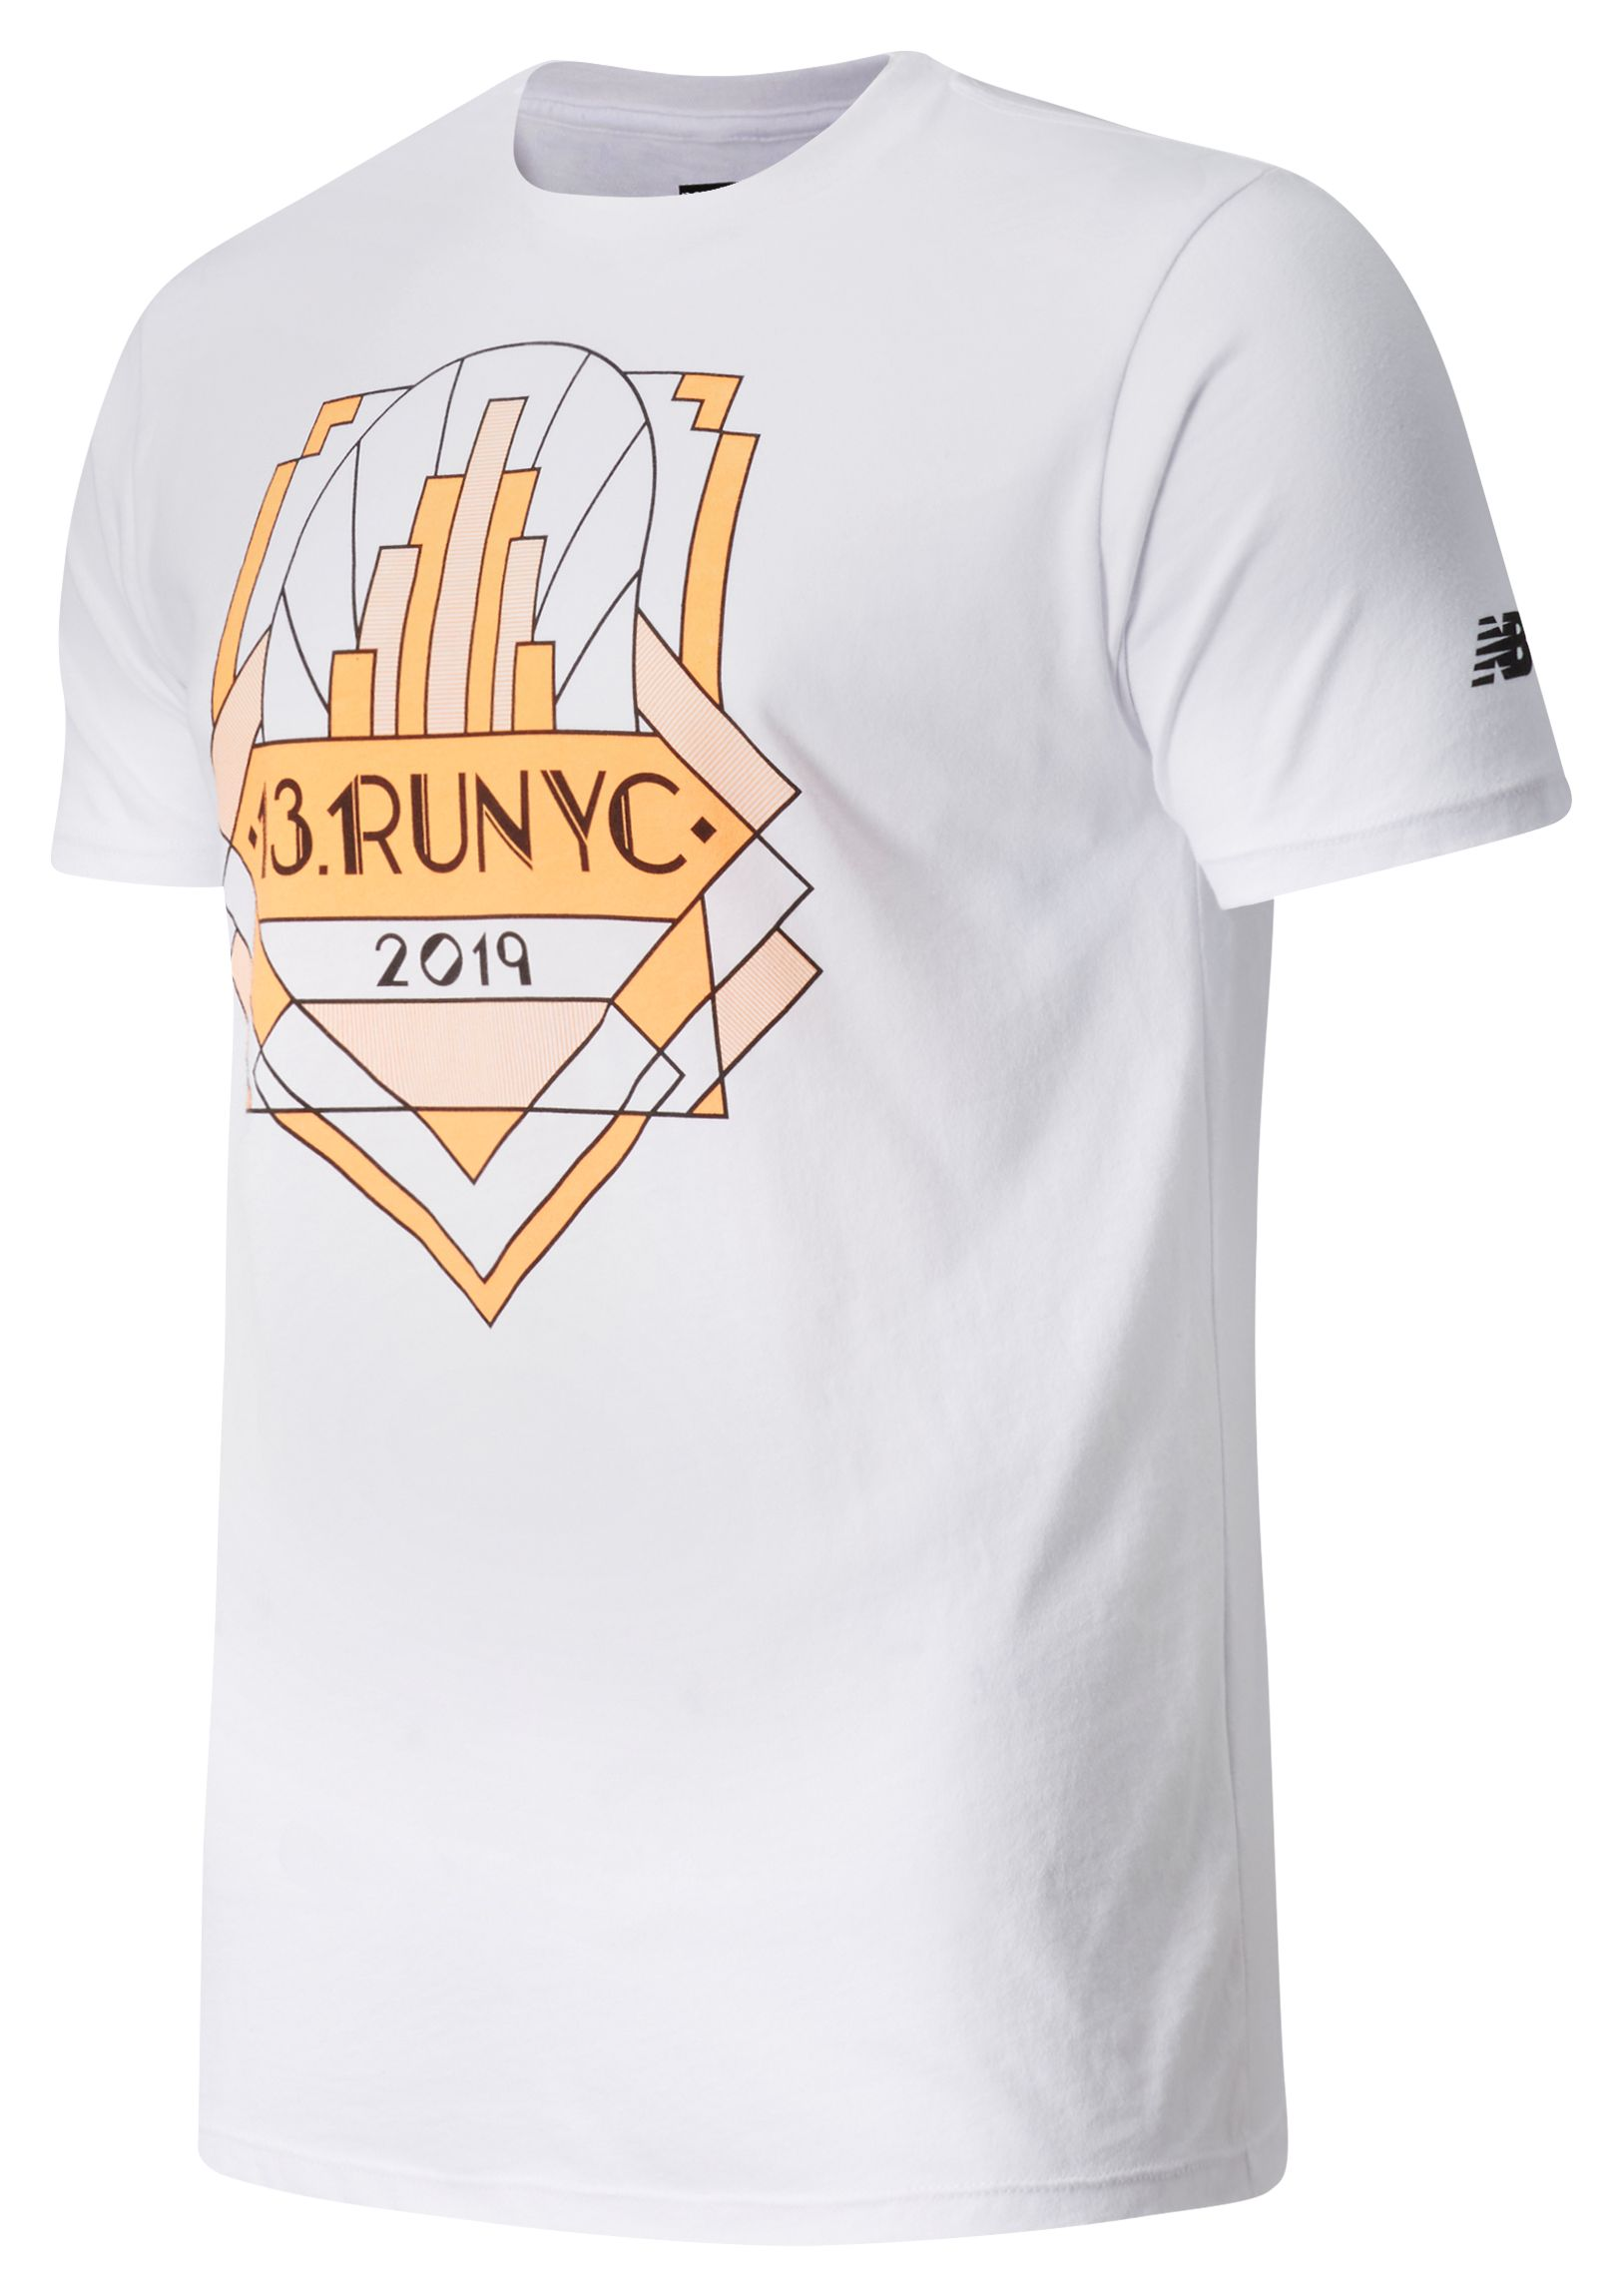 Men's United Airlines Half Run NYC Short Sleeve